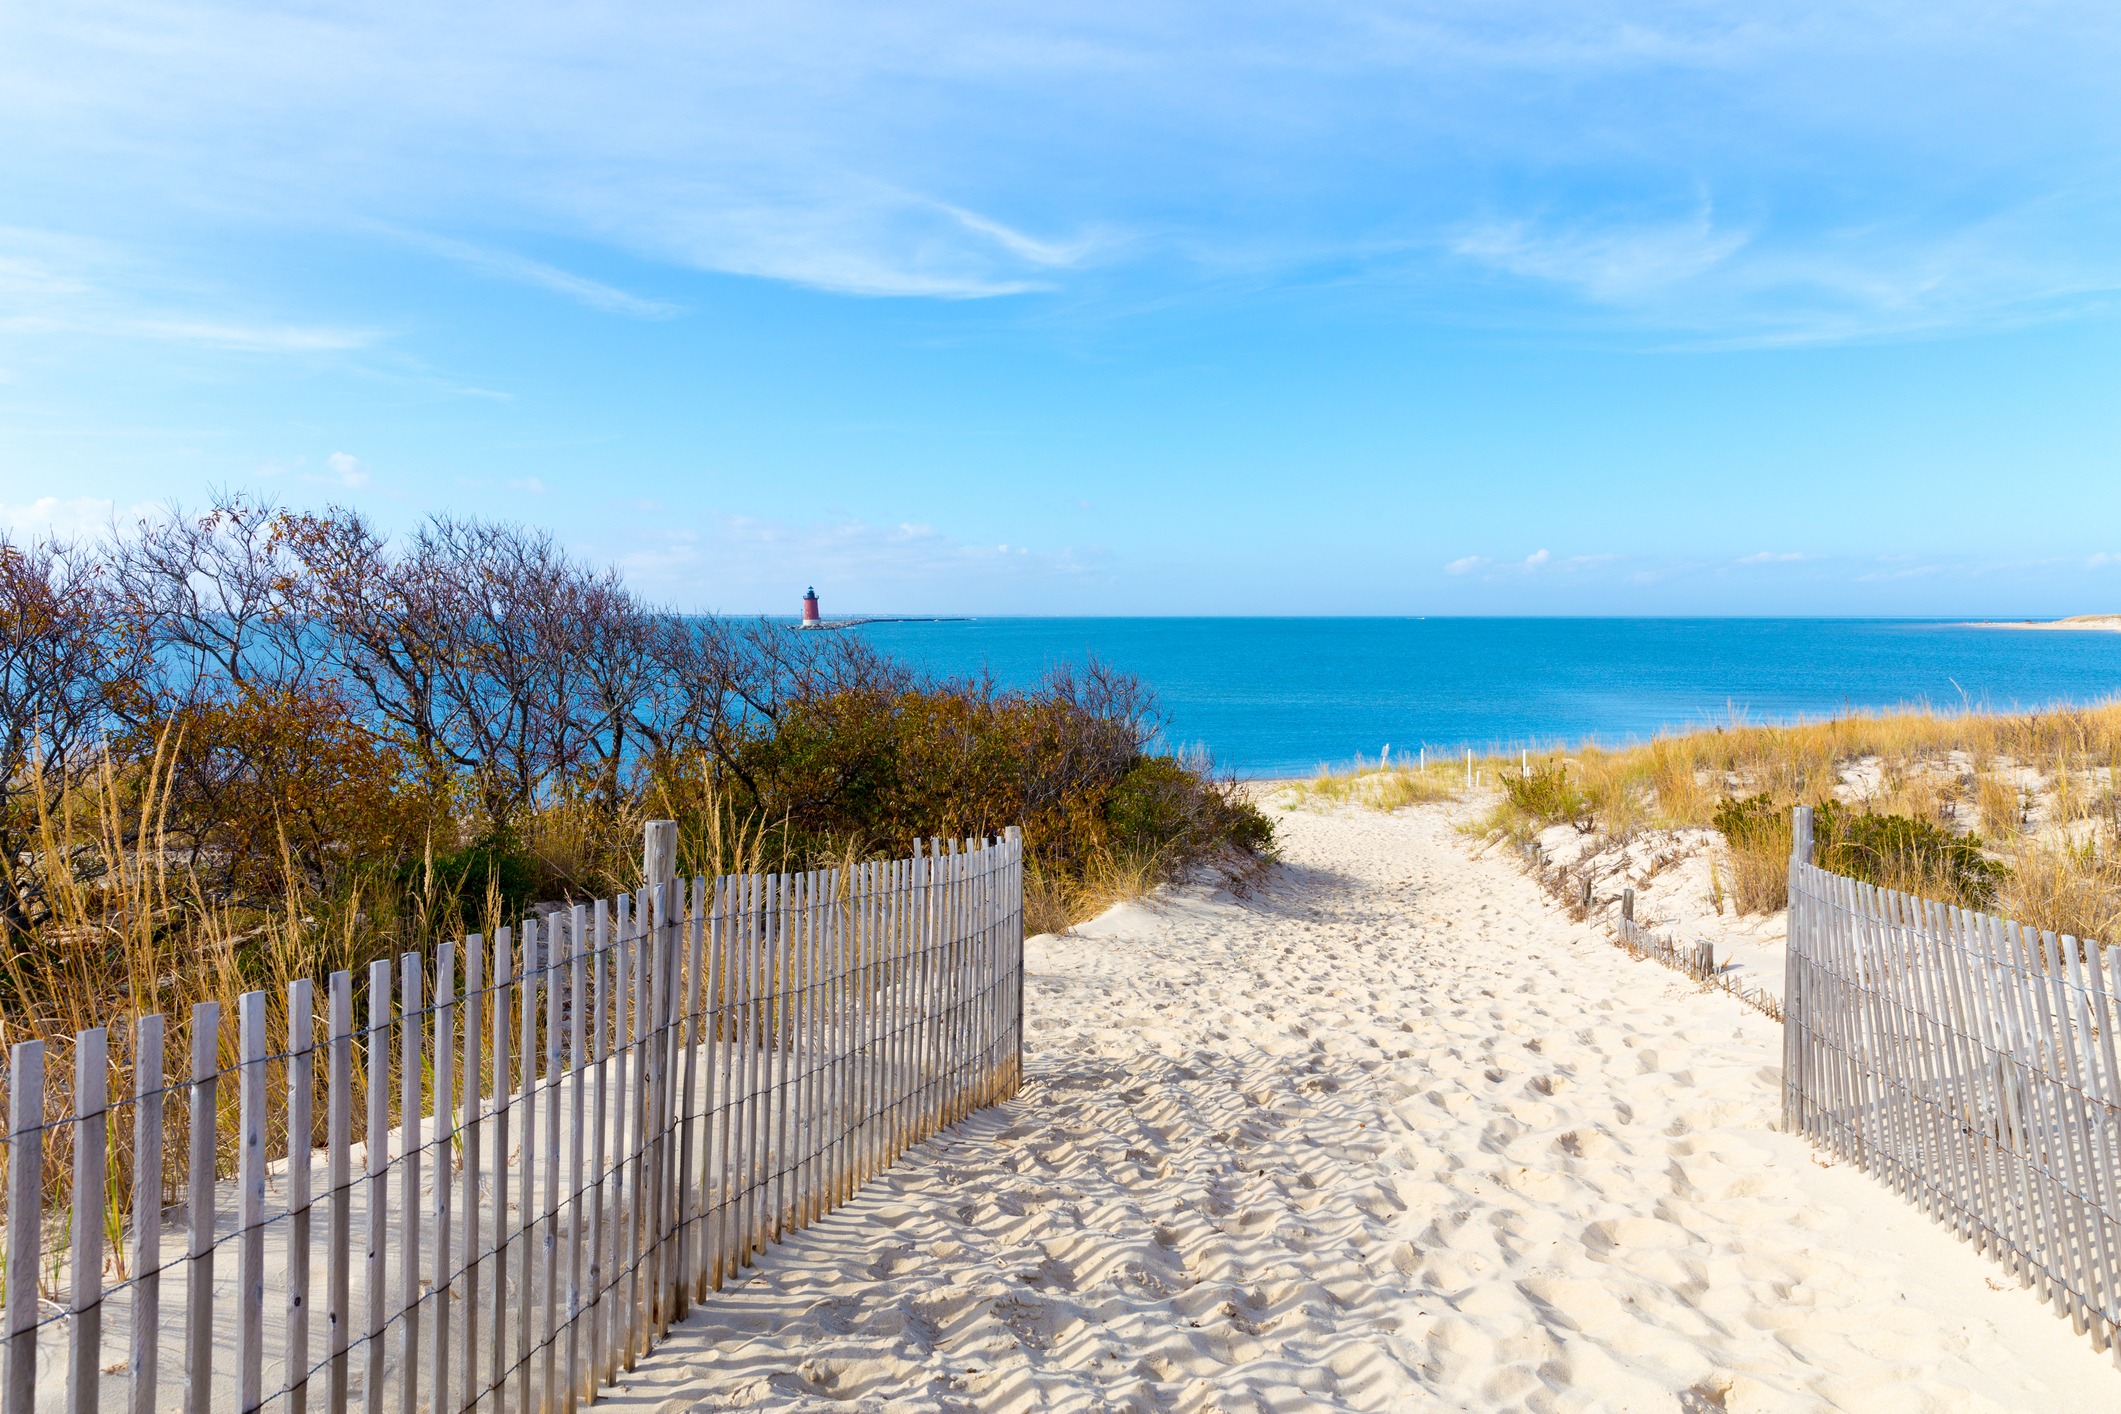 A seascape view at Cape Henlopen, Delaware in Lewes.